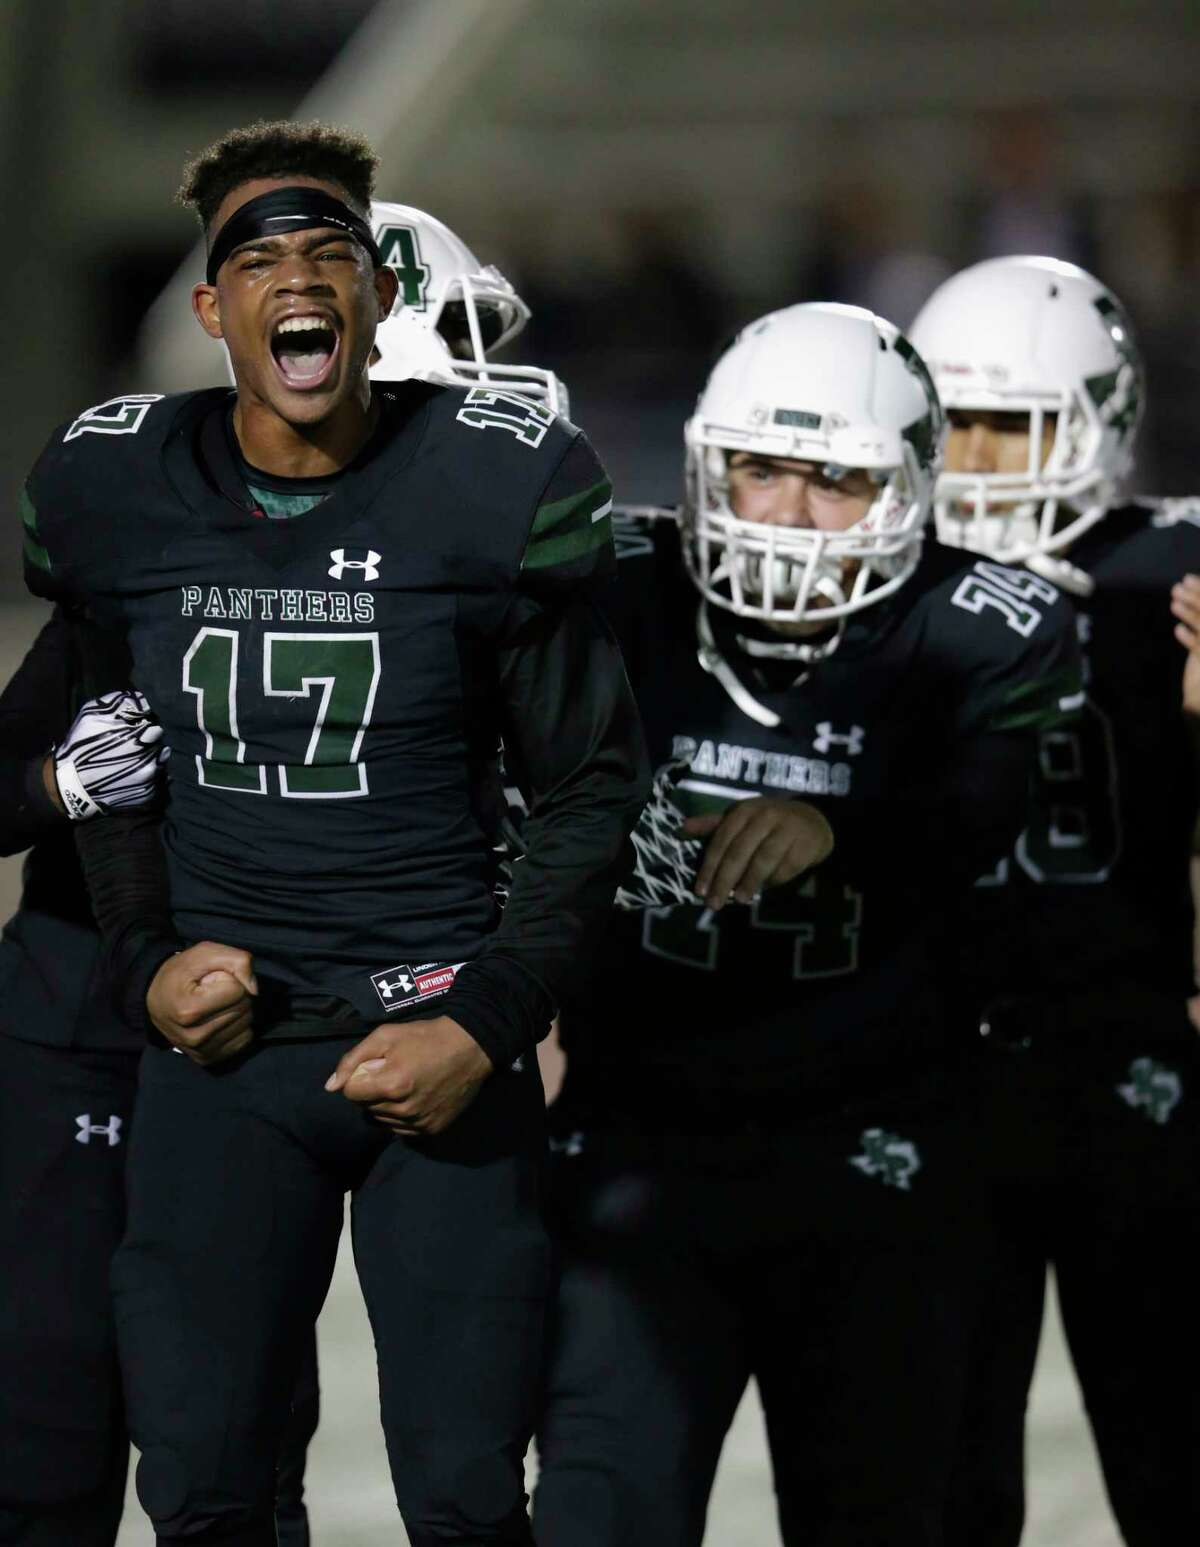 Kingwood Park Panthers running back Immanuel Mcelroy jr (17) celebrates with Gavin McGehee (74) after the high school football game between the Humble Wildcats and the Kingwood Park Panthers in Humble, TX on Friday, November 10, 2017.